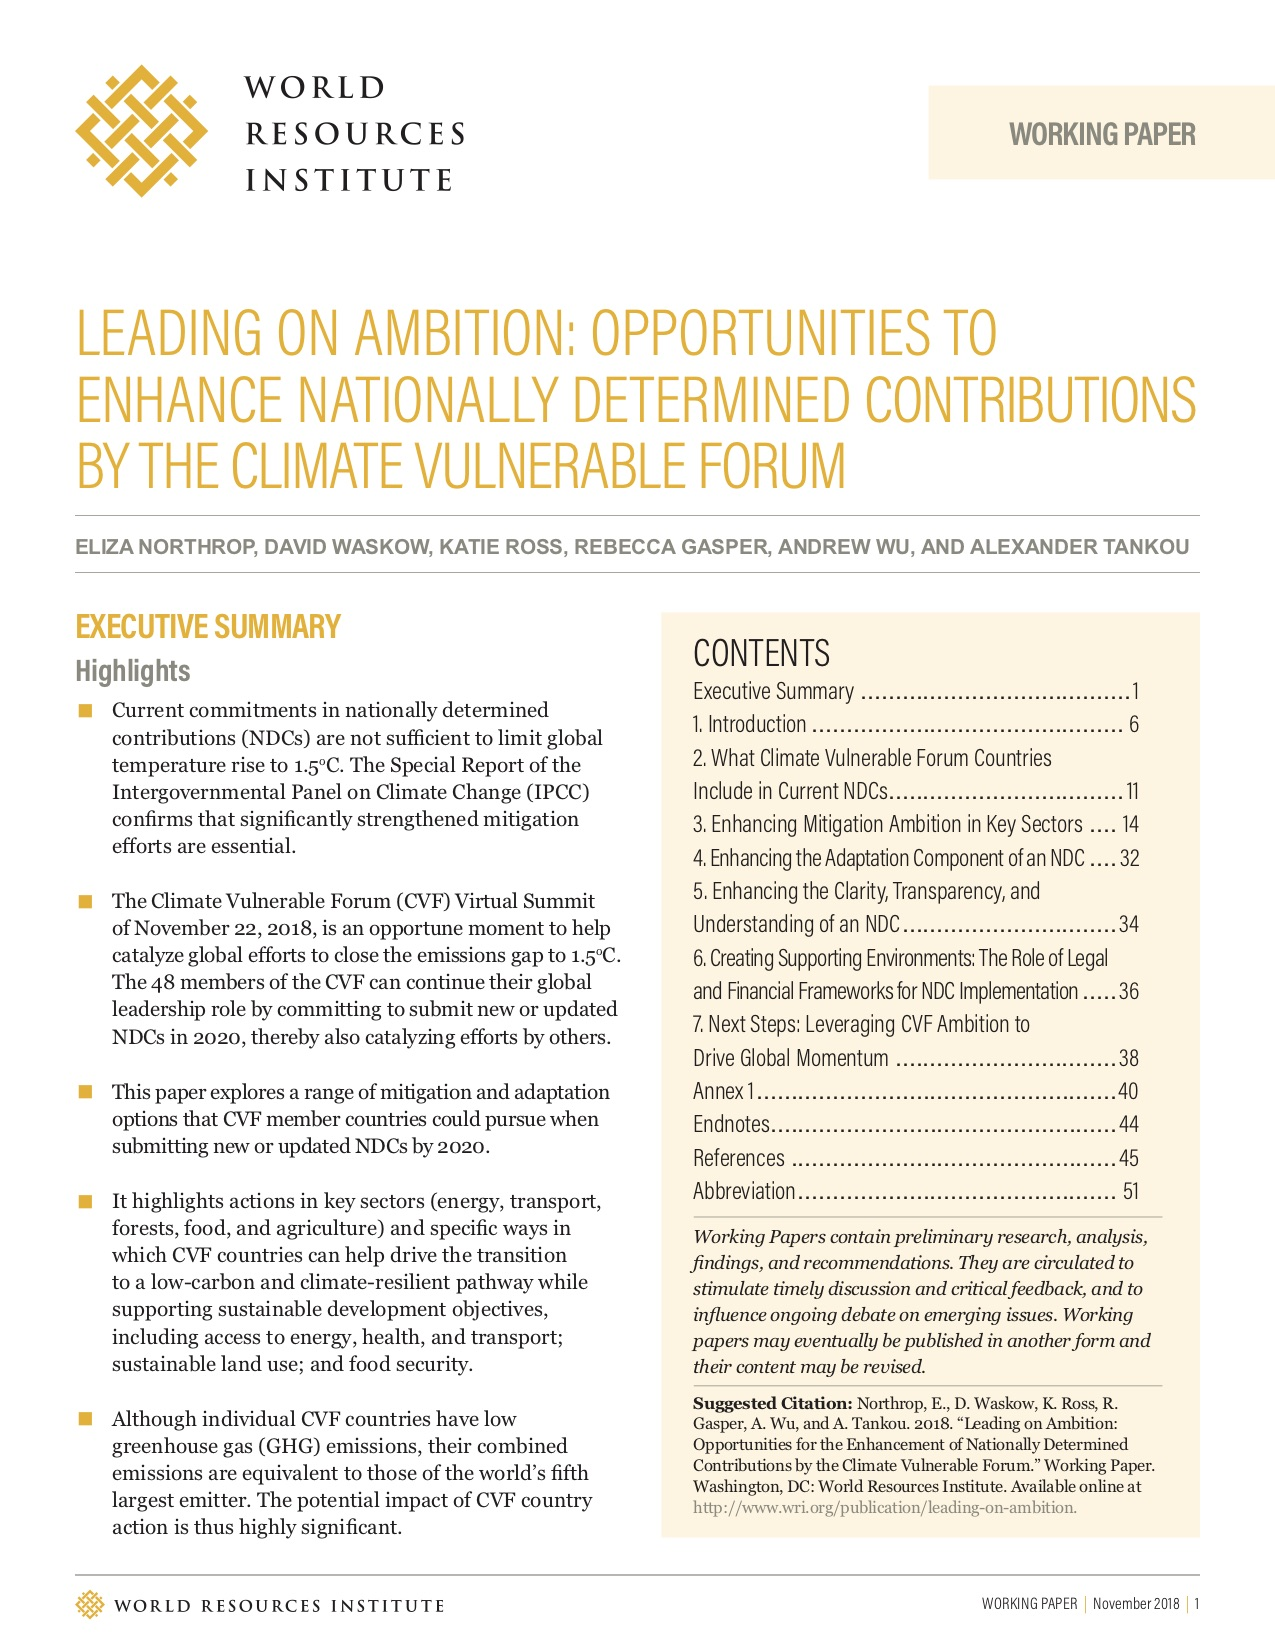 Leading On Ambition Opportunities For The Enhancement Of Nationally